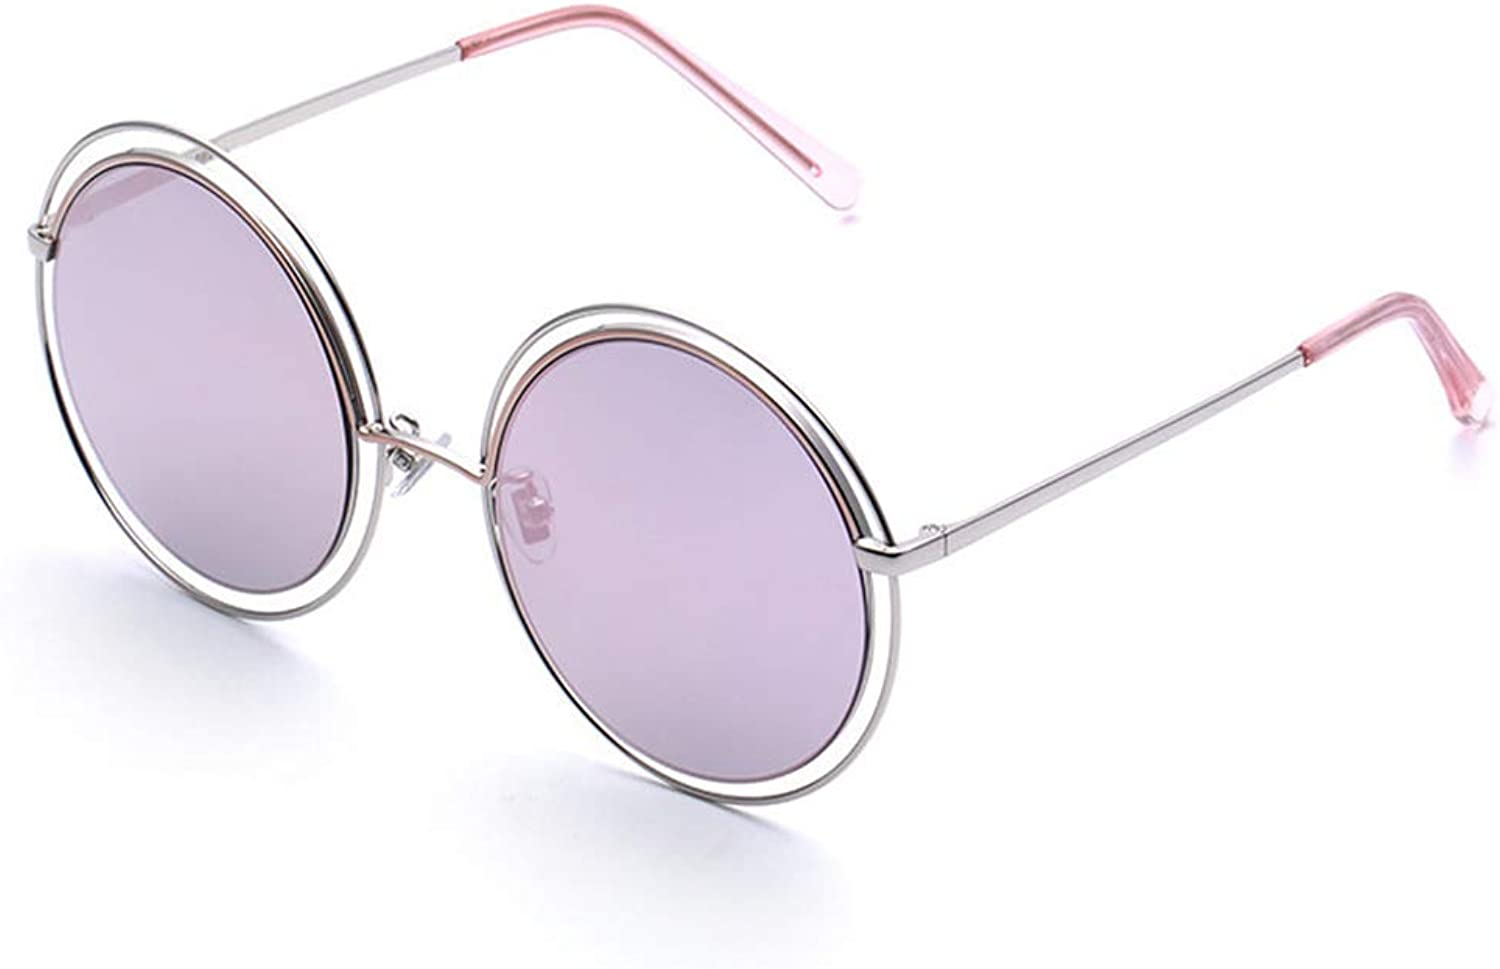 XF Sunglasses Sunglasses  UV Predection, Fashion Retro, Ladies Shopping Driving 3 colors to Choose from Sunglasses & Eyewear (color   Pink)